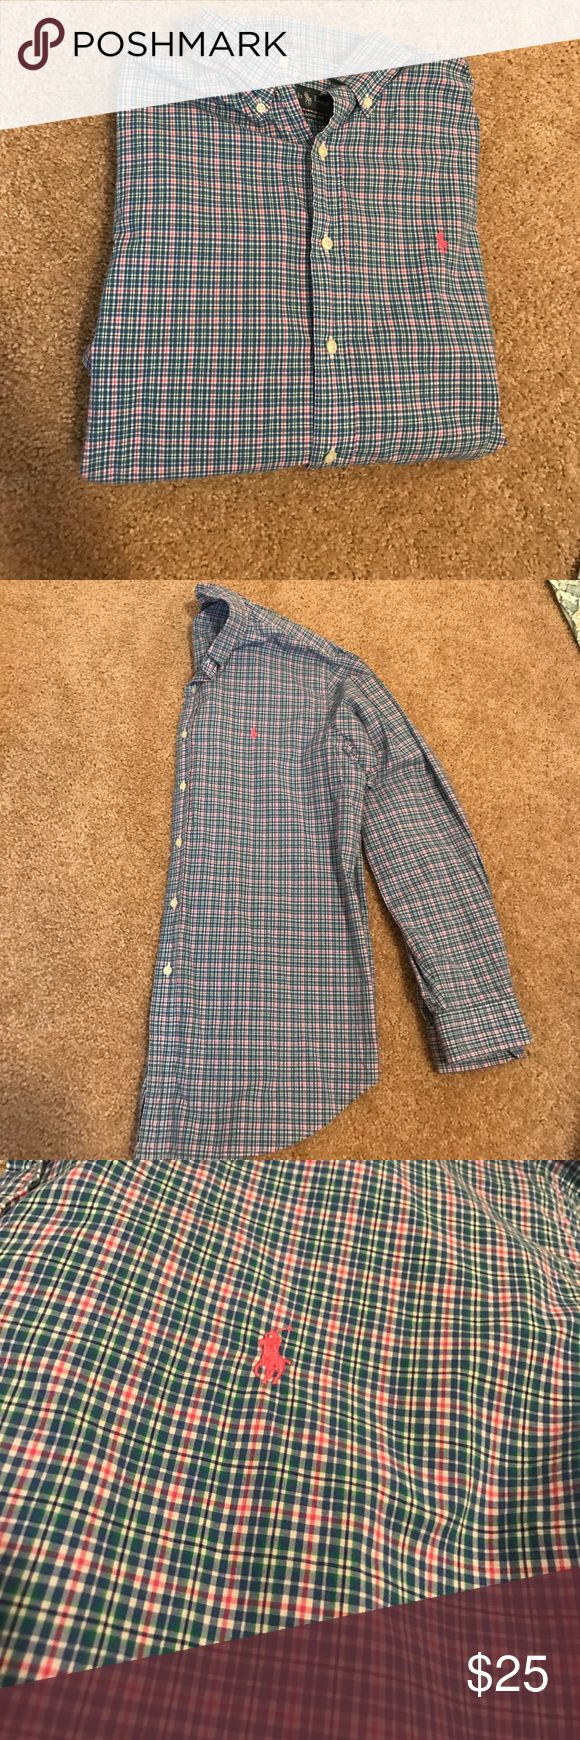 Ralph Lauren Polo dress shirt Beautiful like new Ralph Lauren Polo dress shirt... great vibrant colors!! Blue striped polo!! Perfect condition 💙 will look great on you!! Ralph Lauren Shirts Dress Shirts